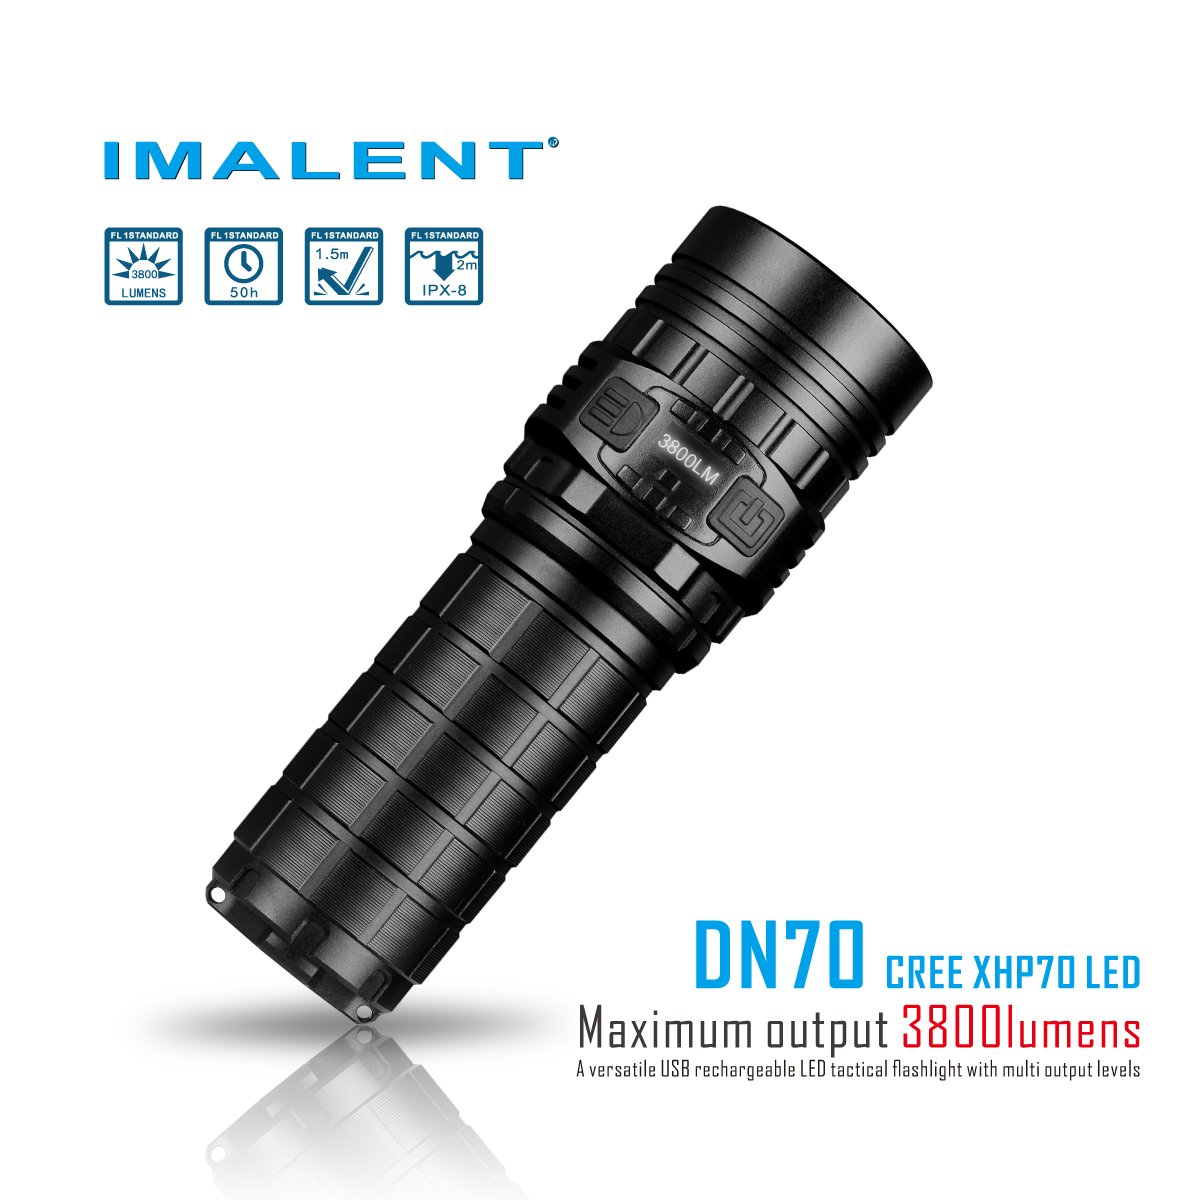 Imalent new DN70 USB rechargeable palm-sized LED flashlight 3800lumens searching light portable floody flashlight with CREE XHP70 LED